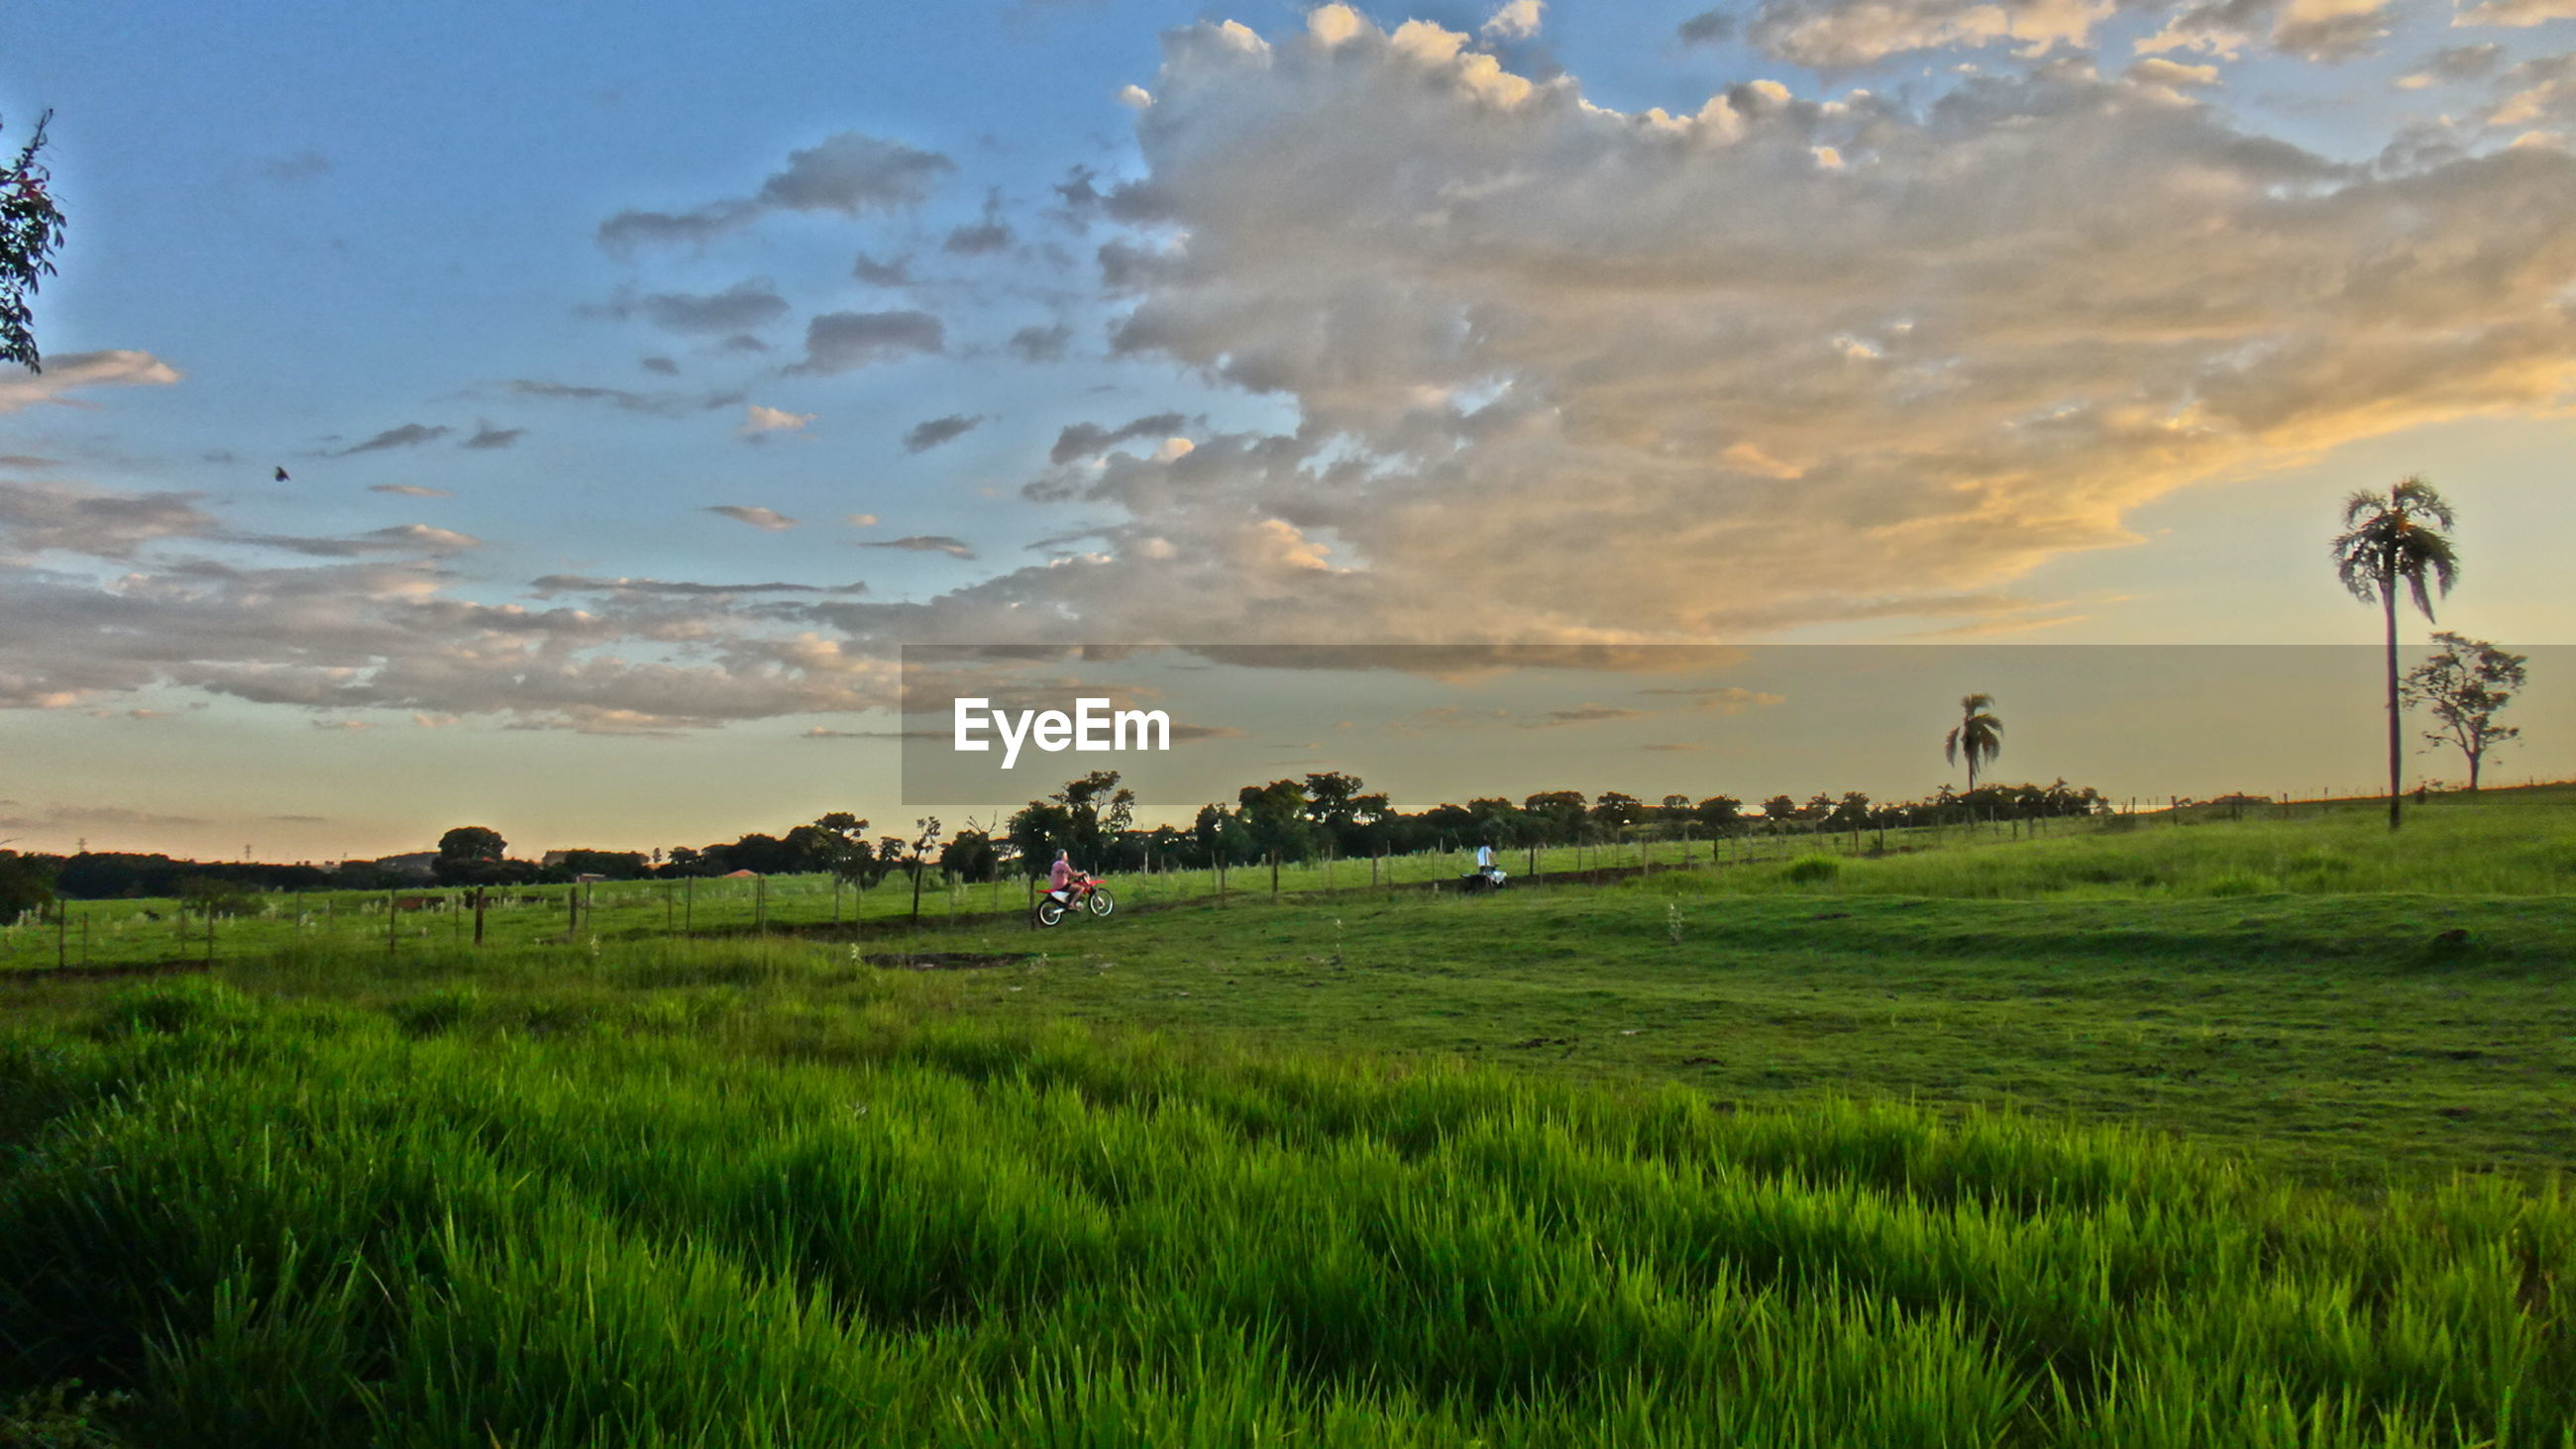 Scenic view of grassy landscape against sky during sunset